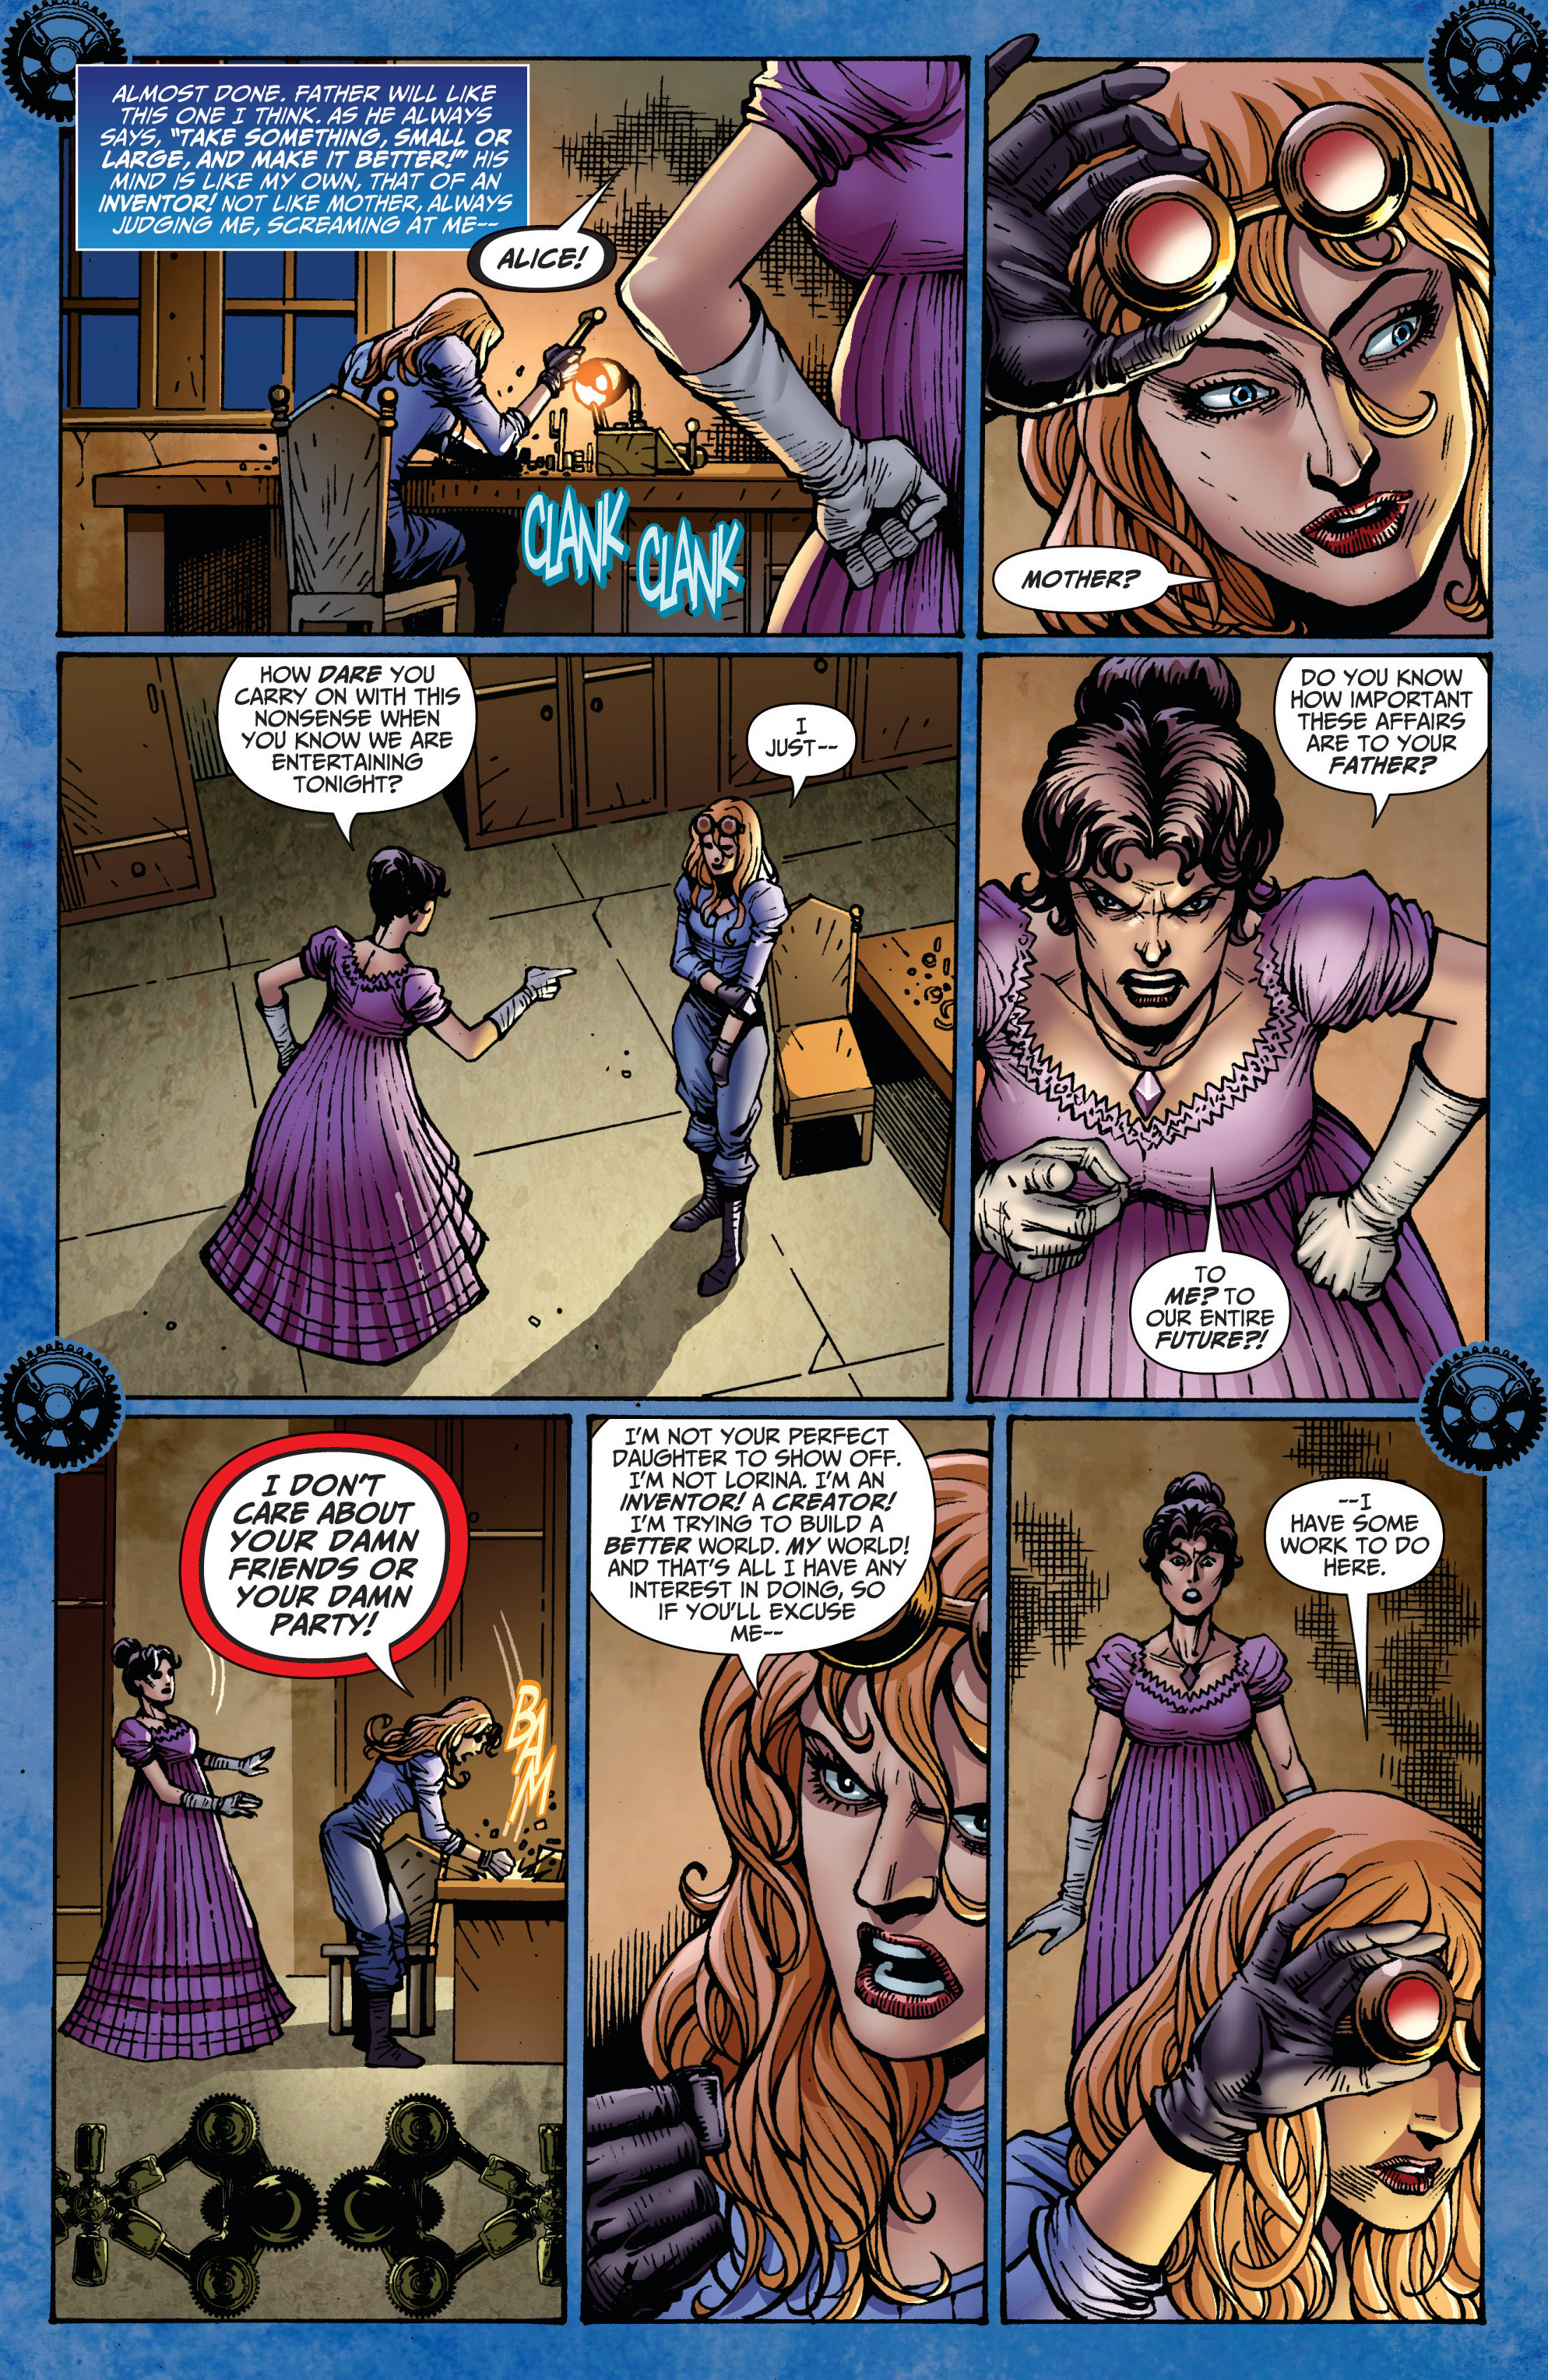 Read online Steampunk: Alice in Wonderland comic -  Issue # Full - 6